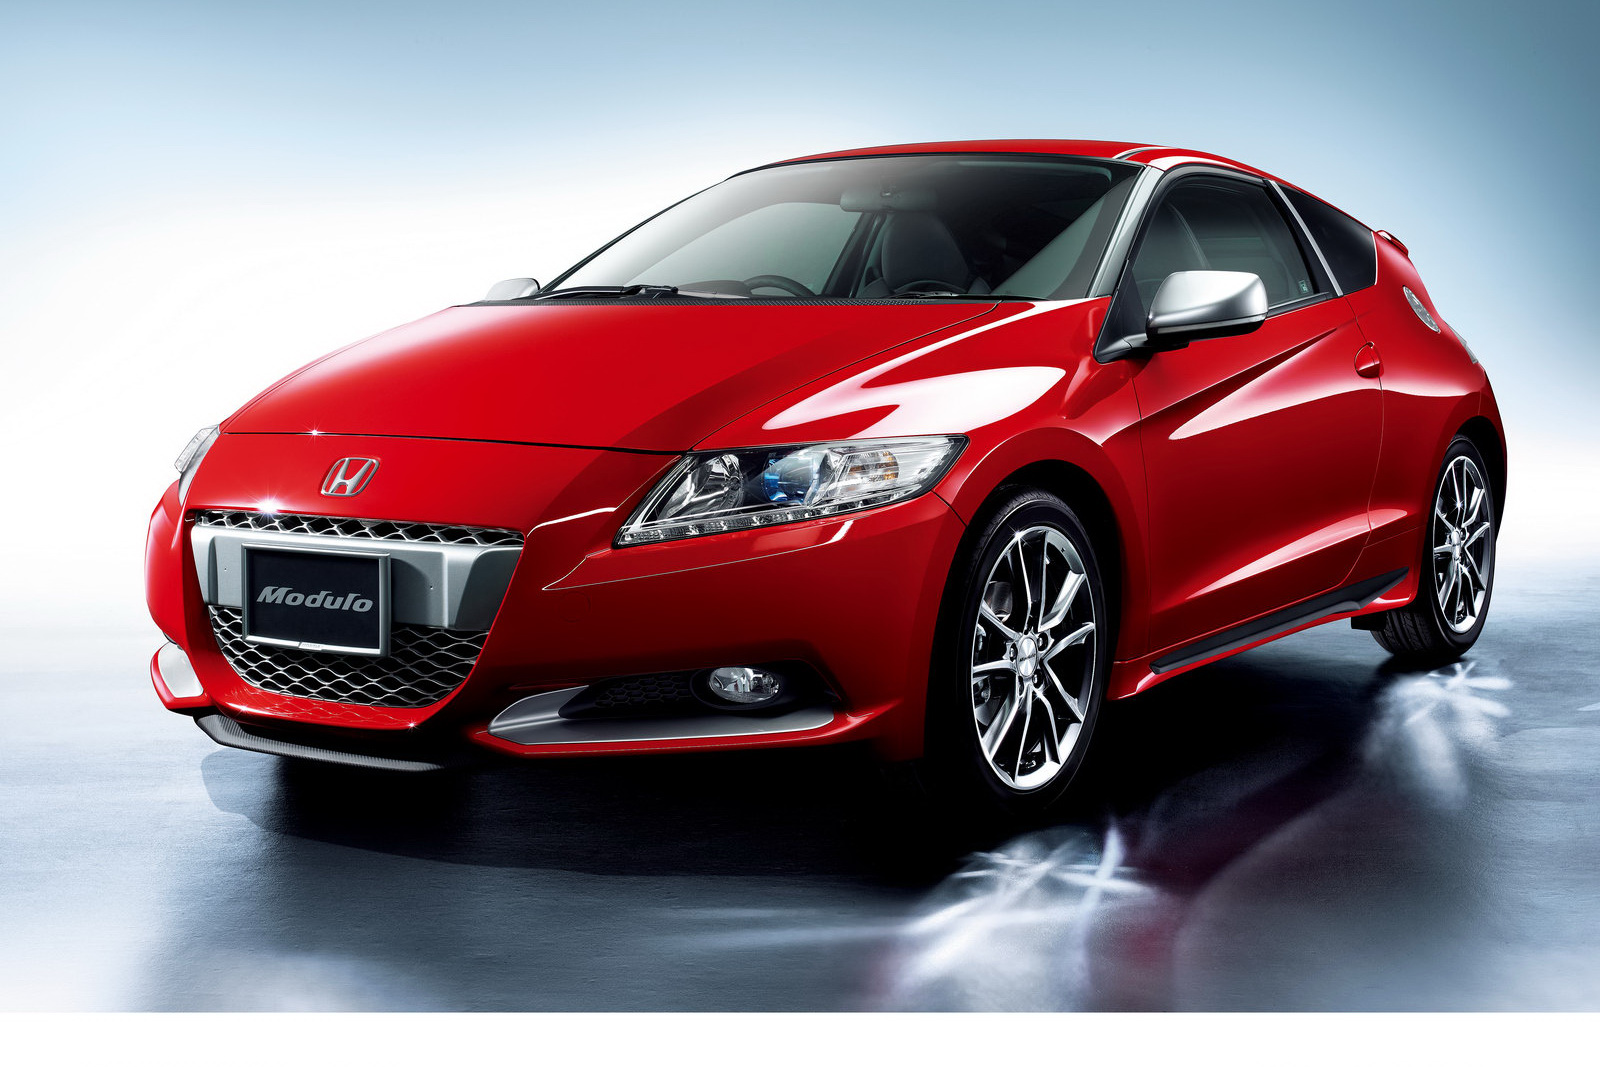 Honda cr-z photo - 4